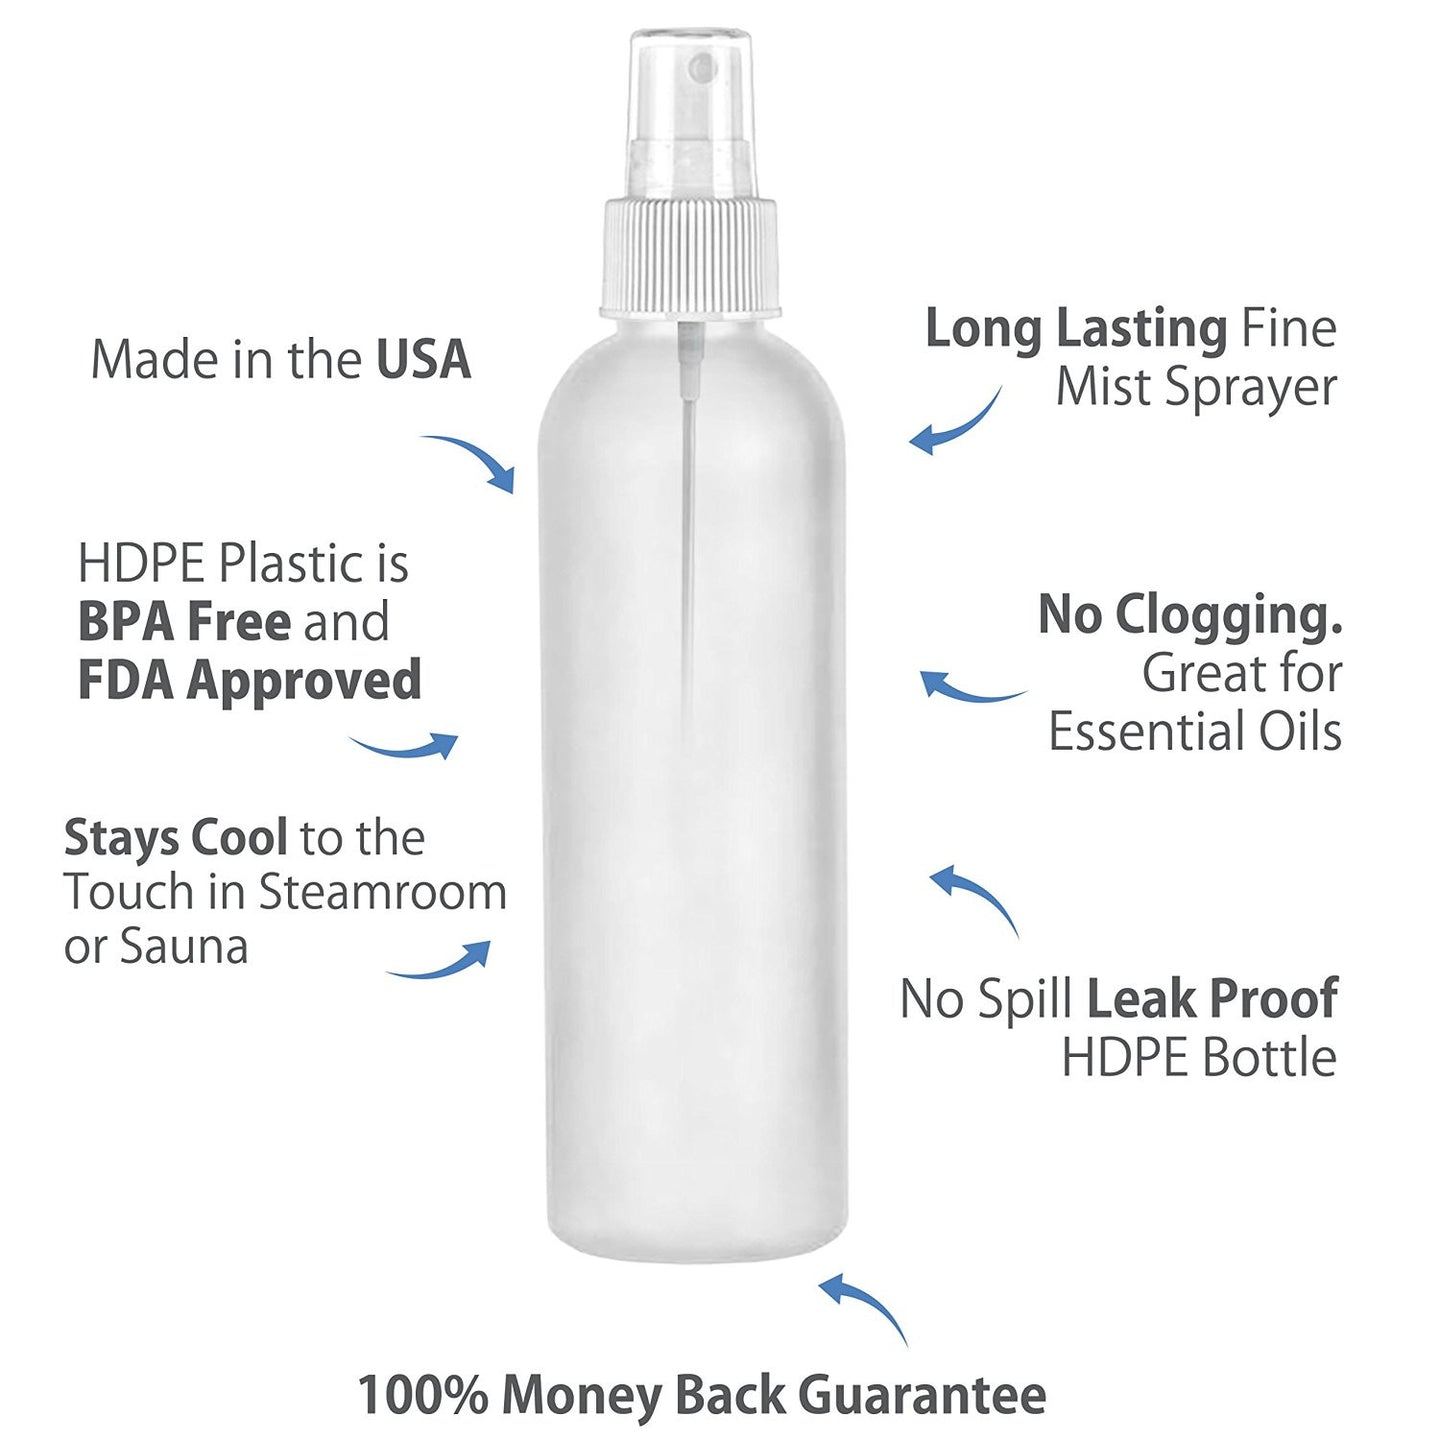 MoYo Natural Labs 4 oz Spray Bottles Fine Mist Empty Travel Containers, BPA Free HDPE Plastic for Essential Oils and Liquids/Cosmetics (Neck 20-410) (Pack of 4, Translucent HDPE Bottle White Spray)